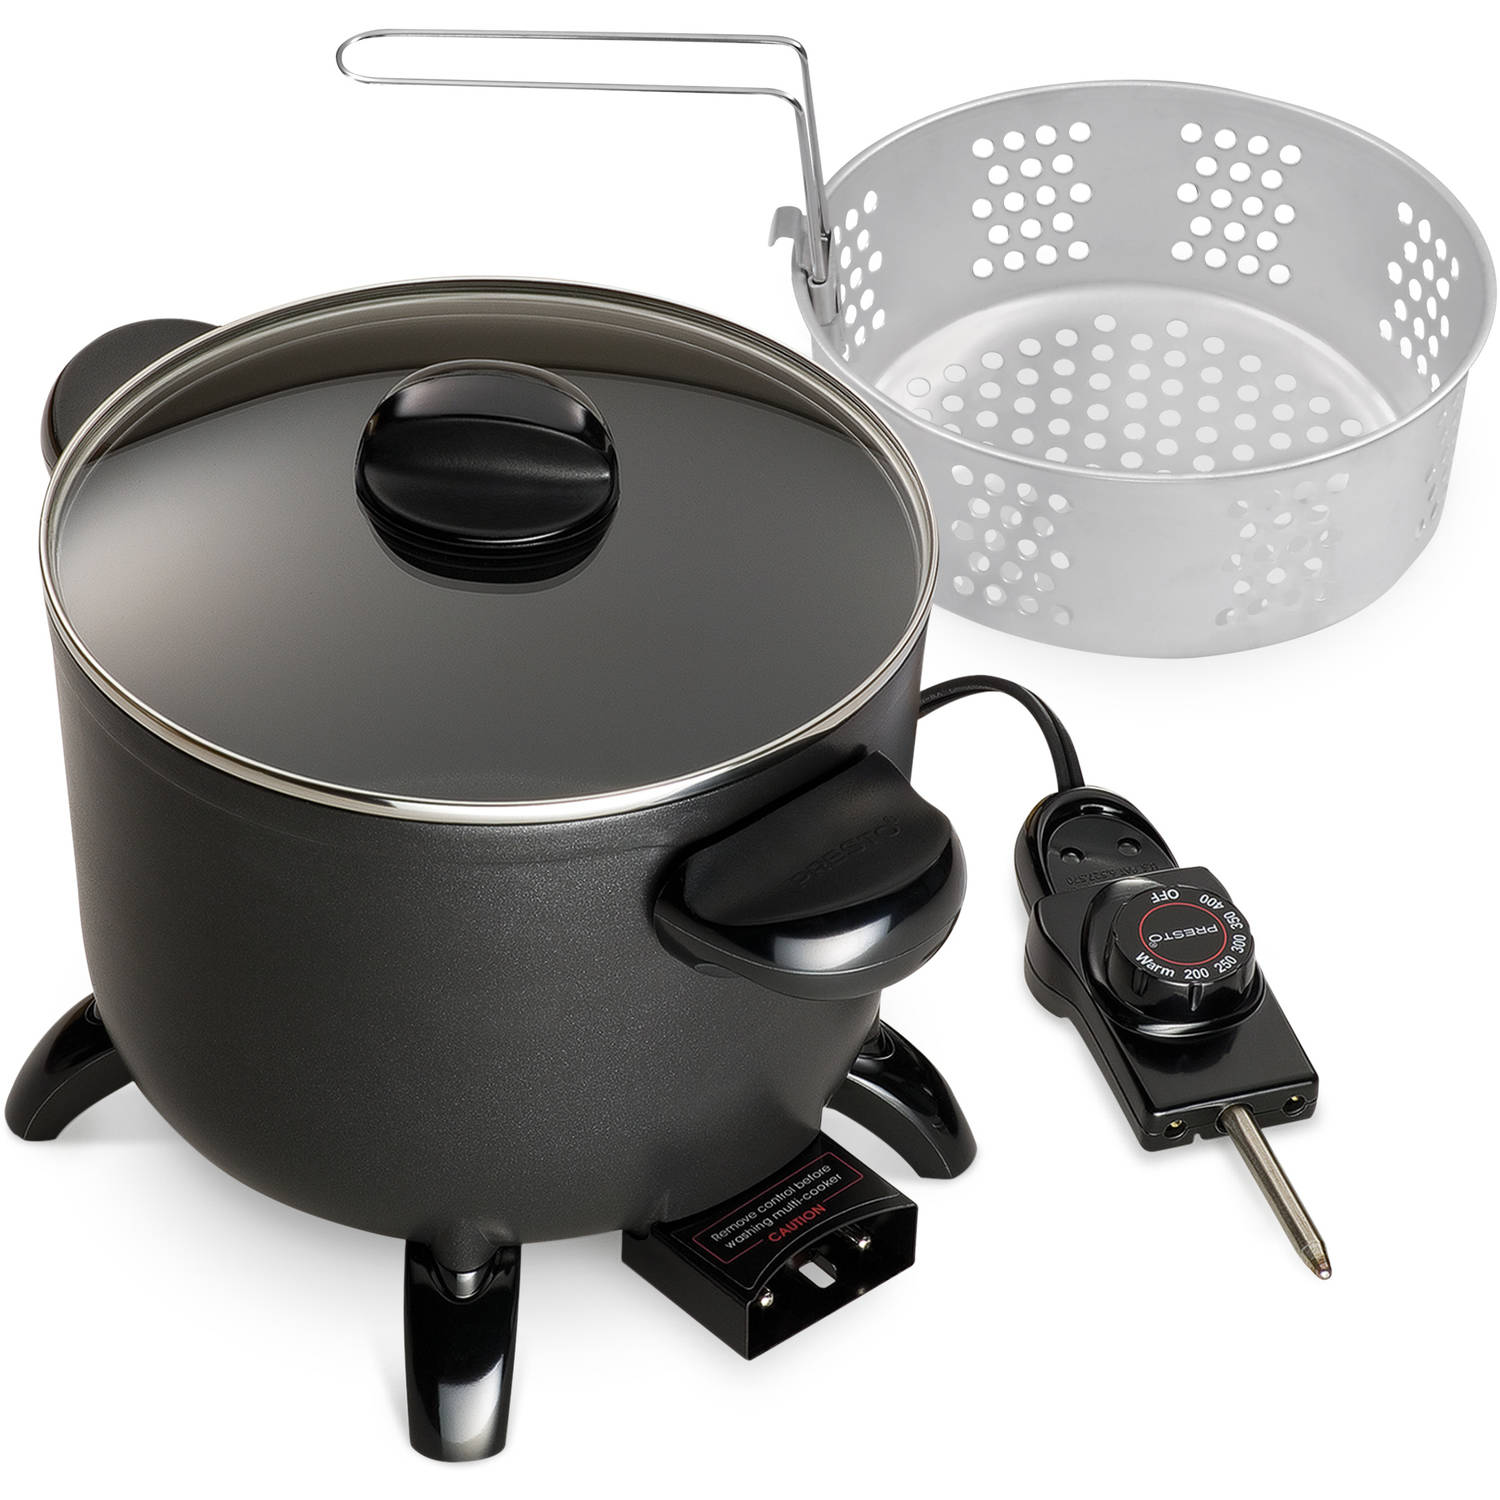 Presto Kitchen Kettle Multi-Cooker Steamer - Best Rice ...